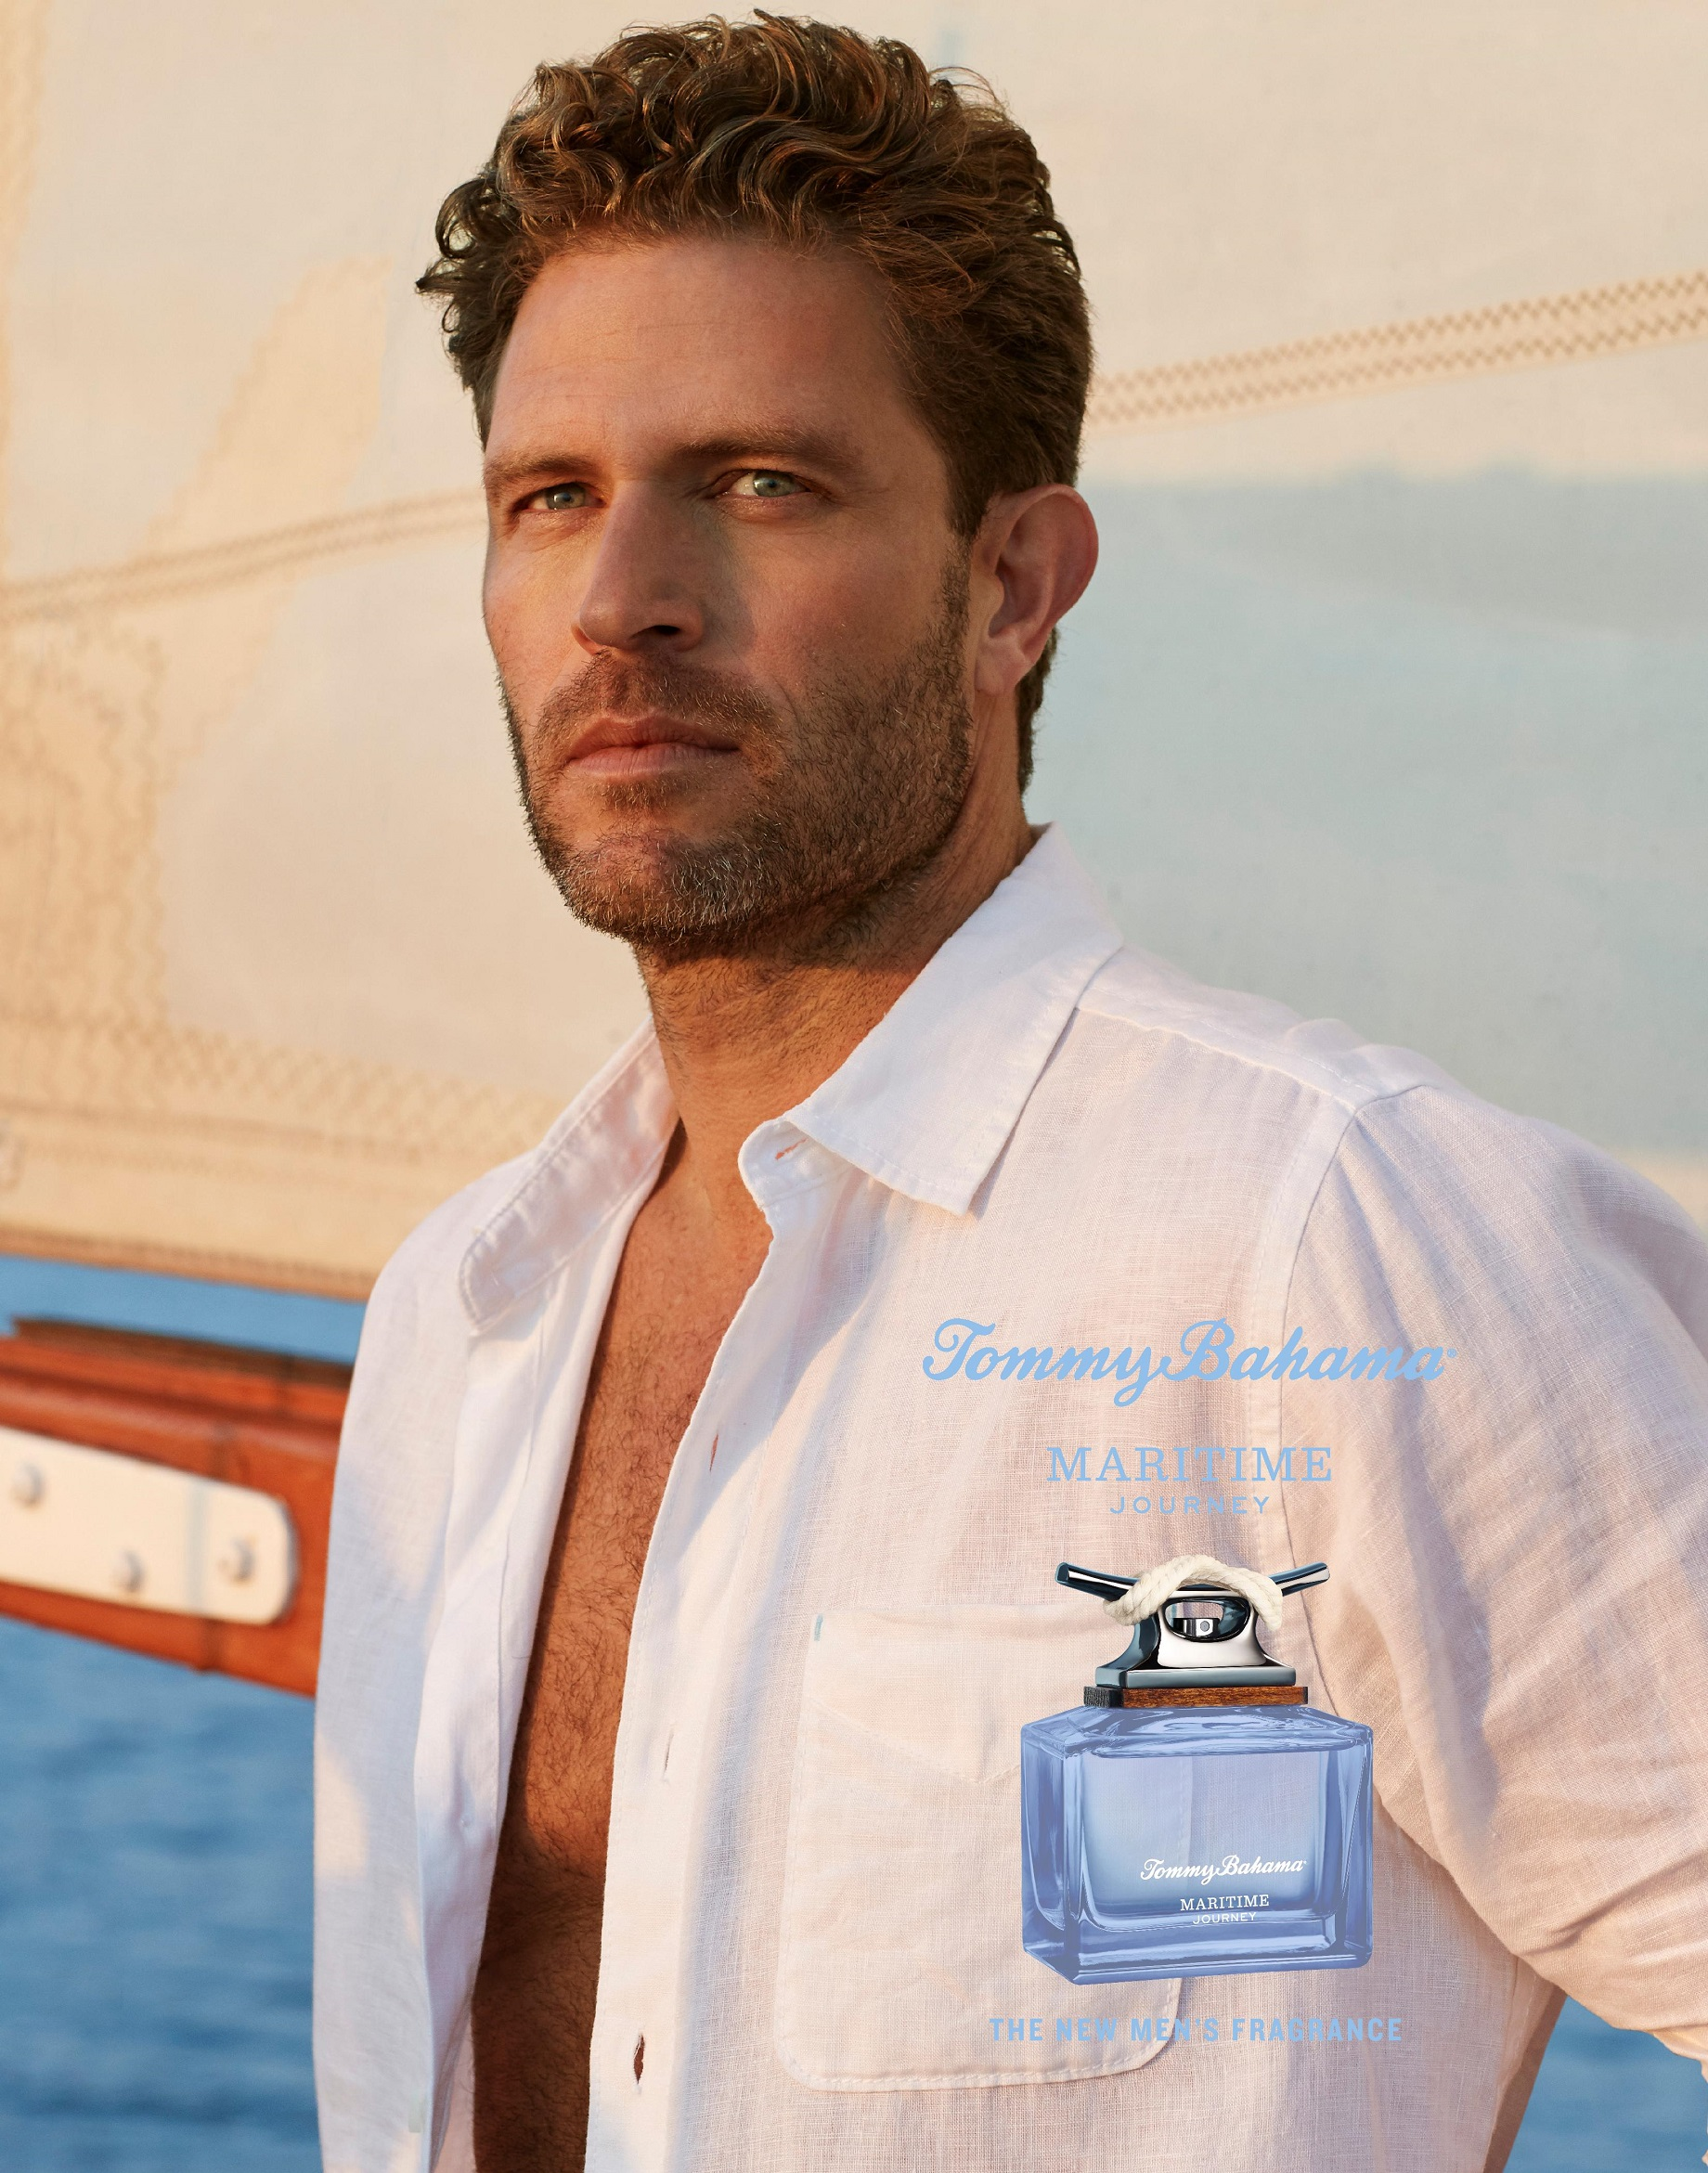 Cologne of the Month for August 2019: Maritime Journey by Tommy Bahama